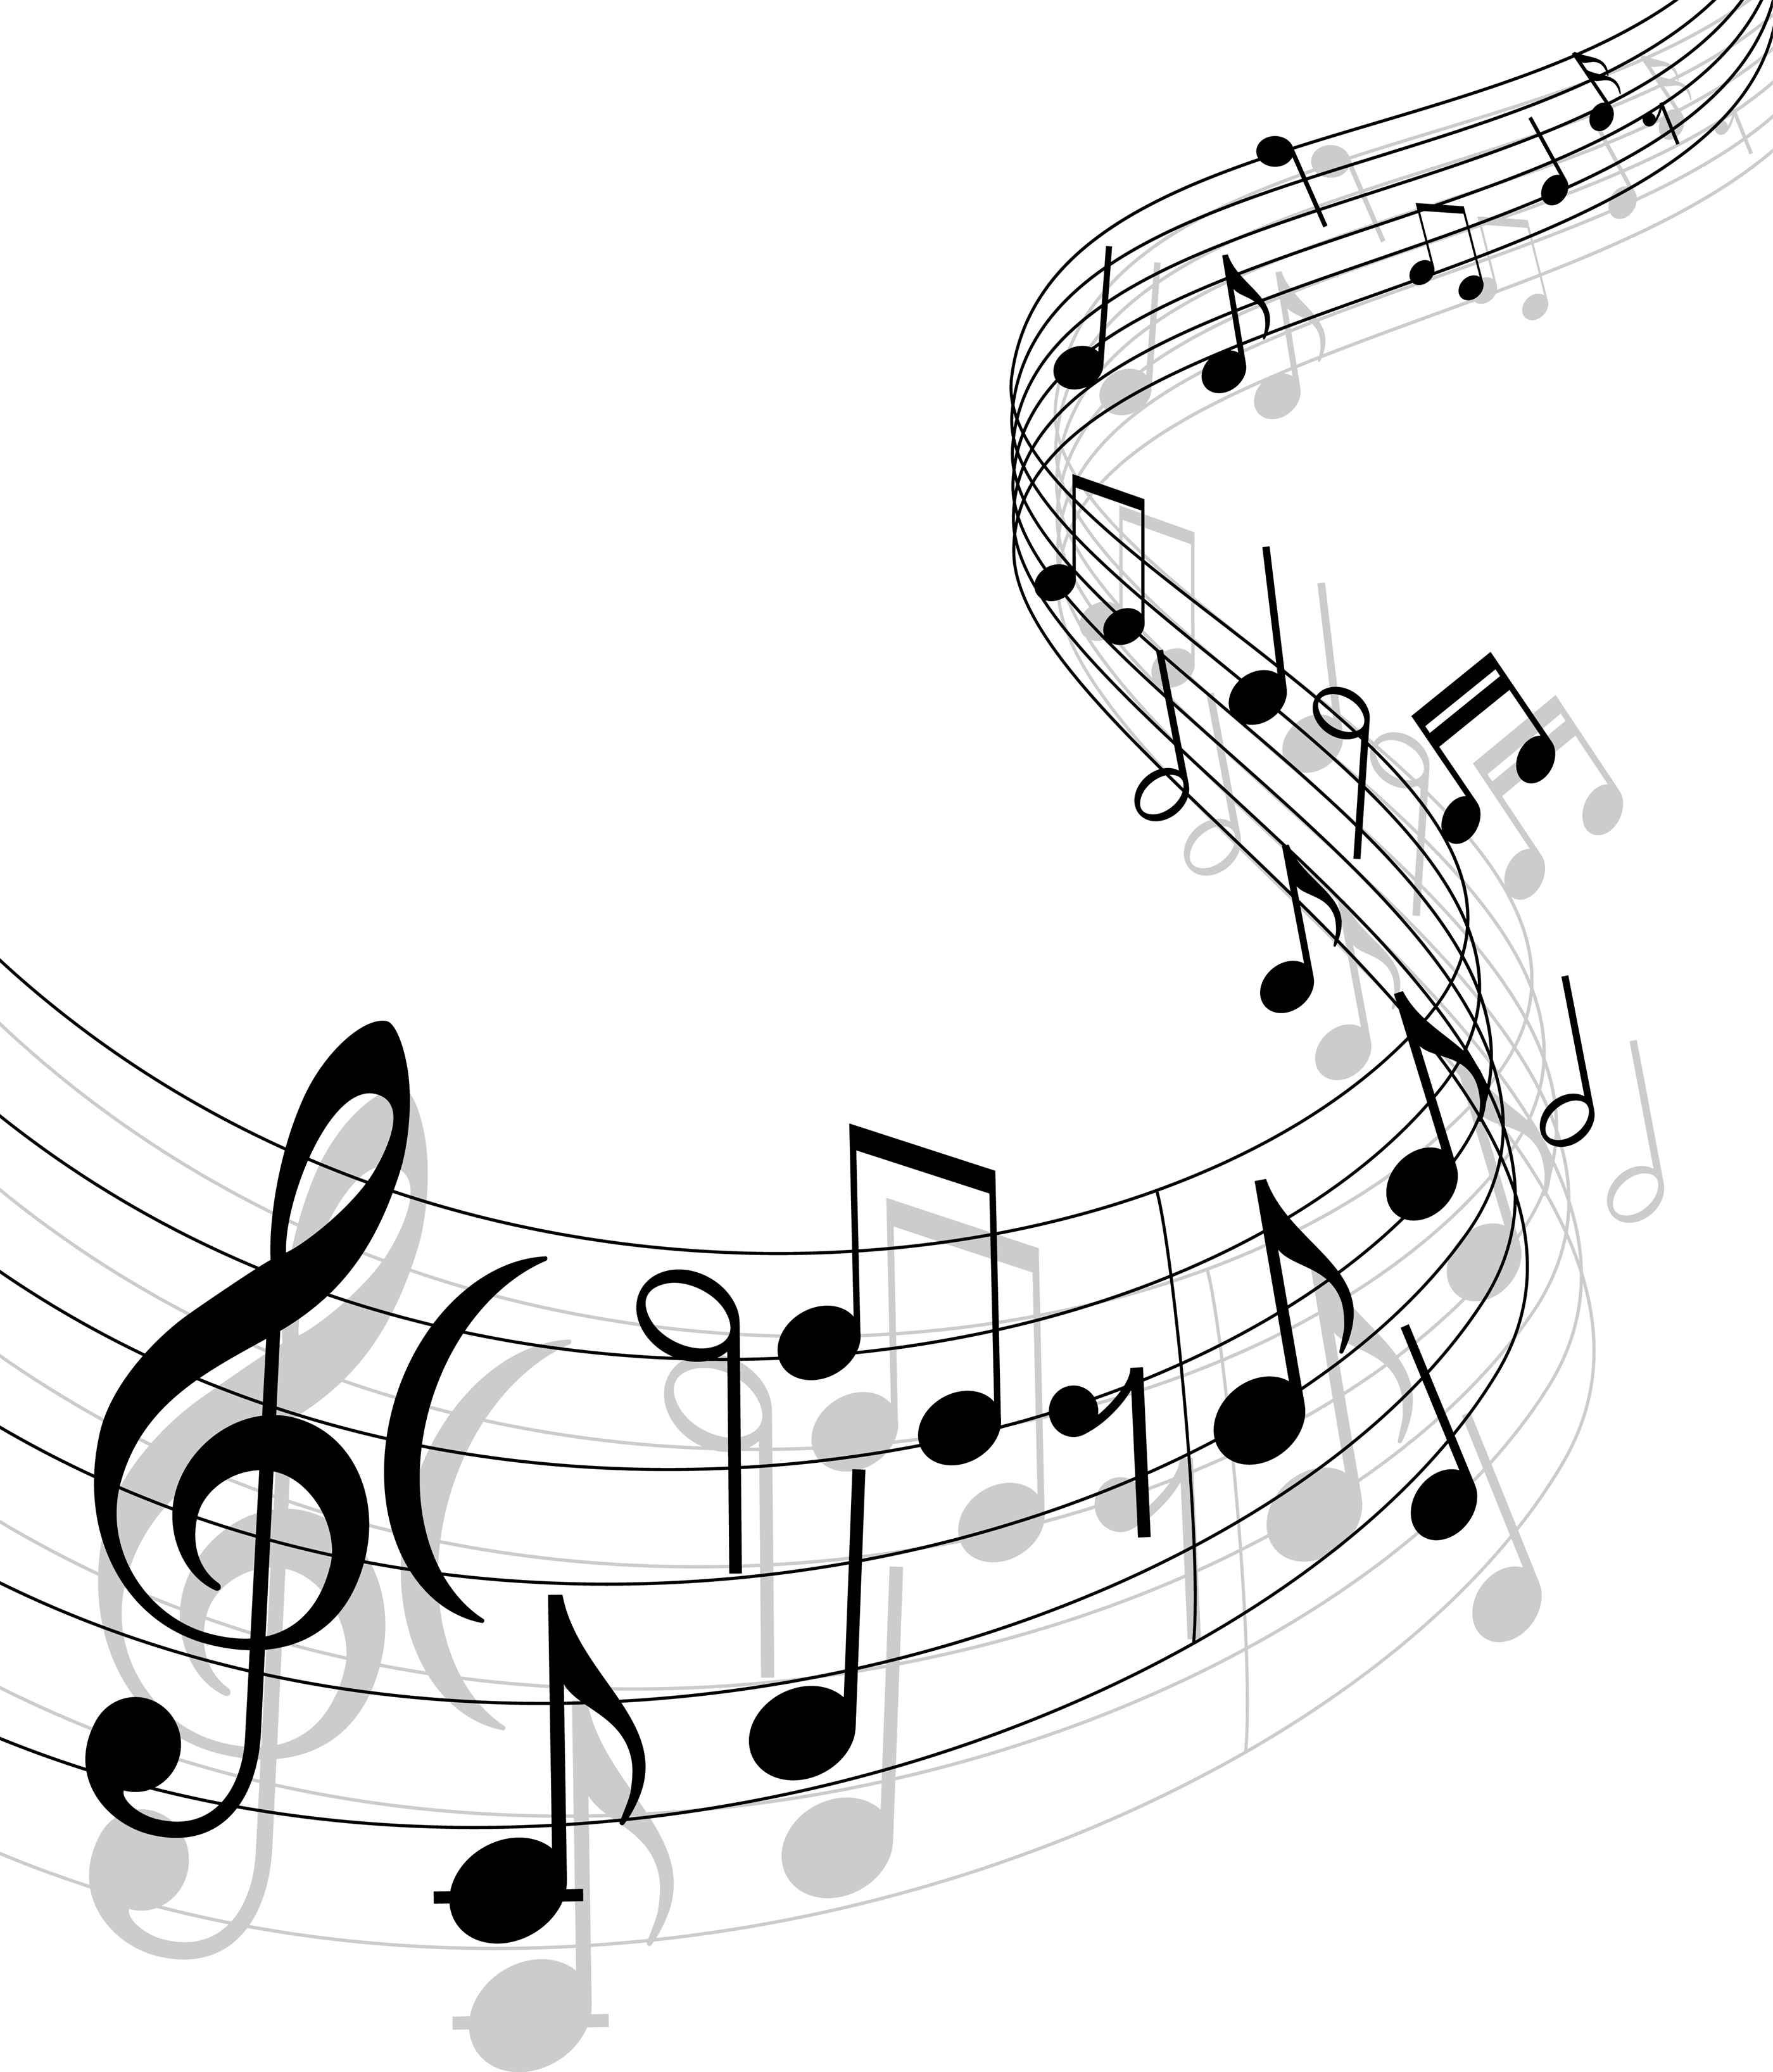 hight resolution of music note gospel musical notes clipart